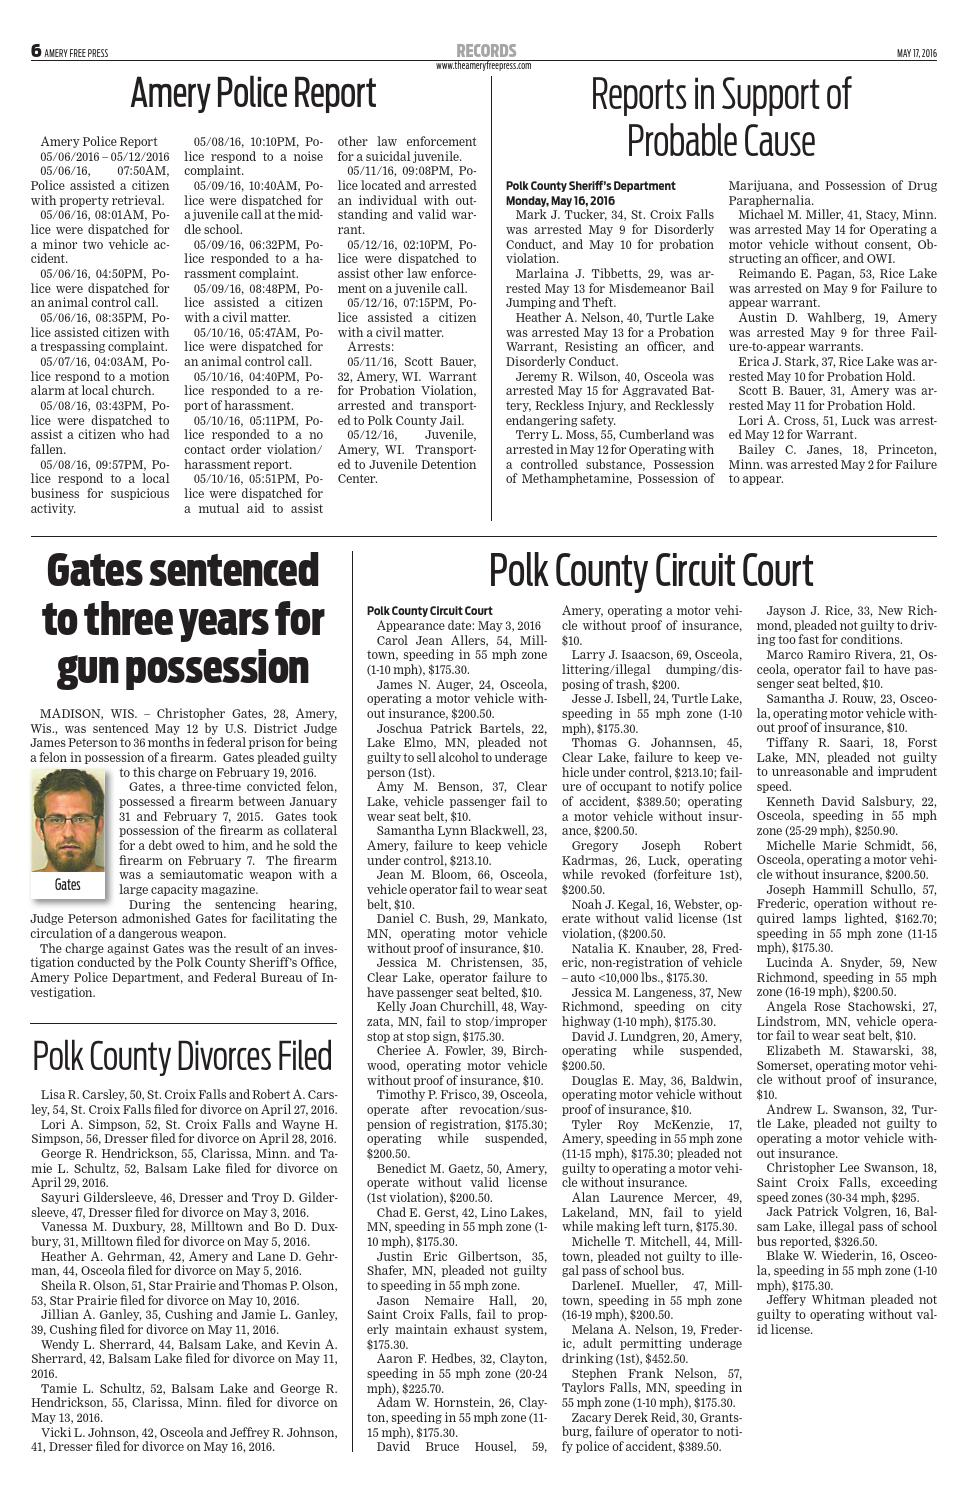 Polk County record for May 12, 2015